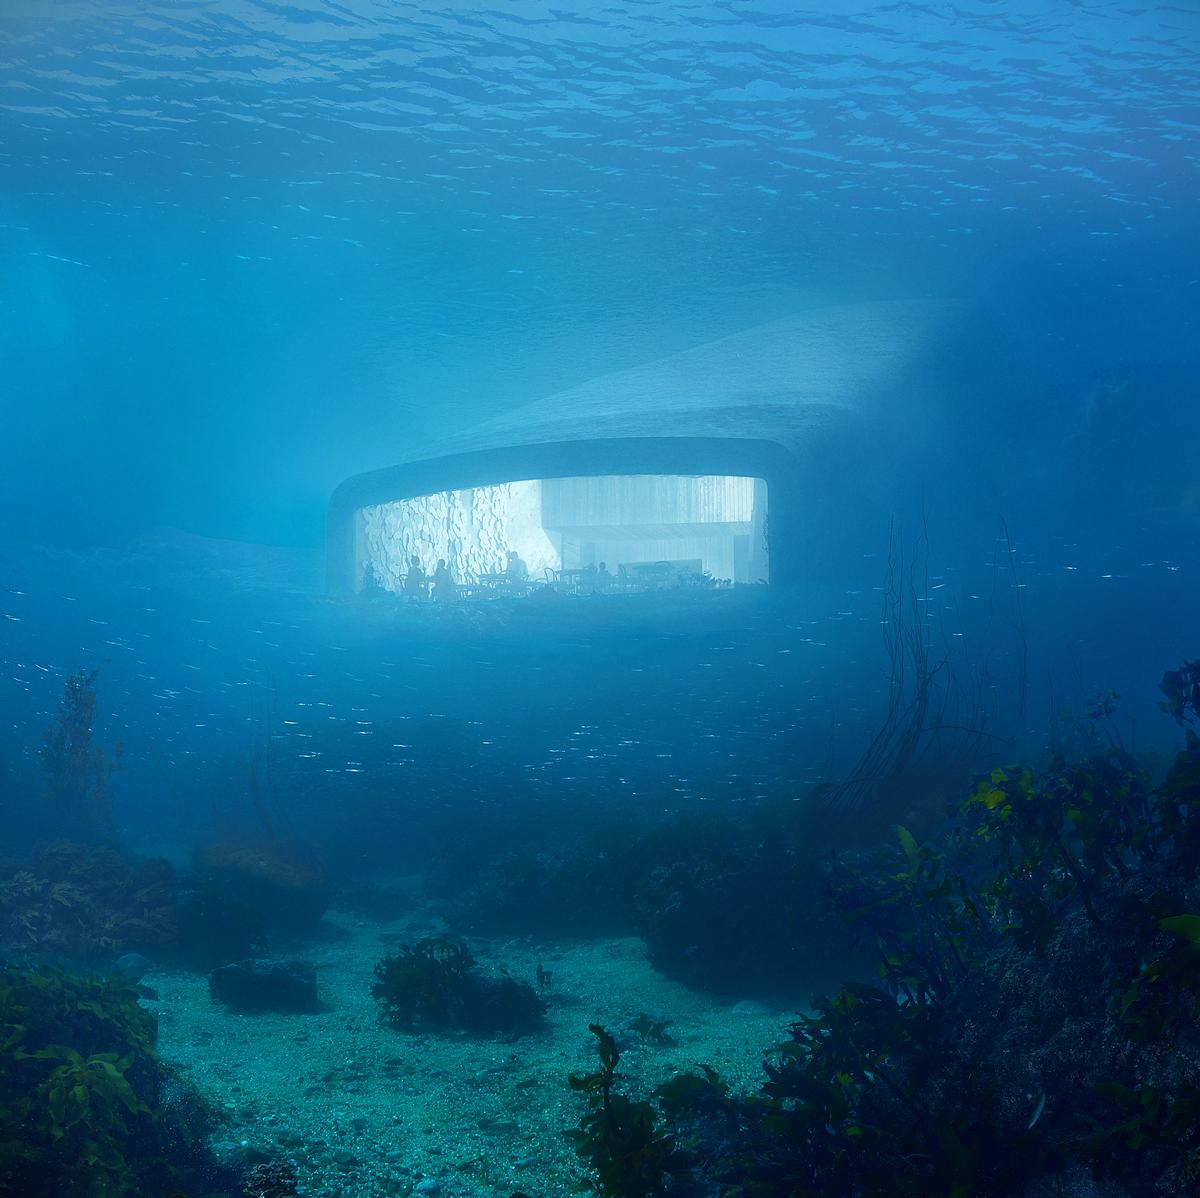 The bottom of the building will rest directly on the sea bed, 5m underwater / MIR and Snøhetta